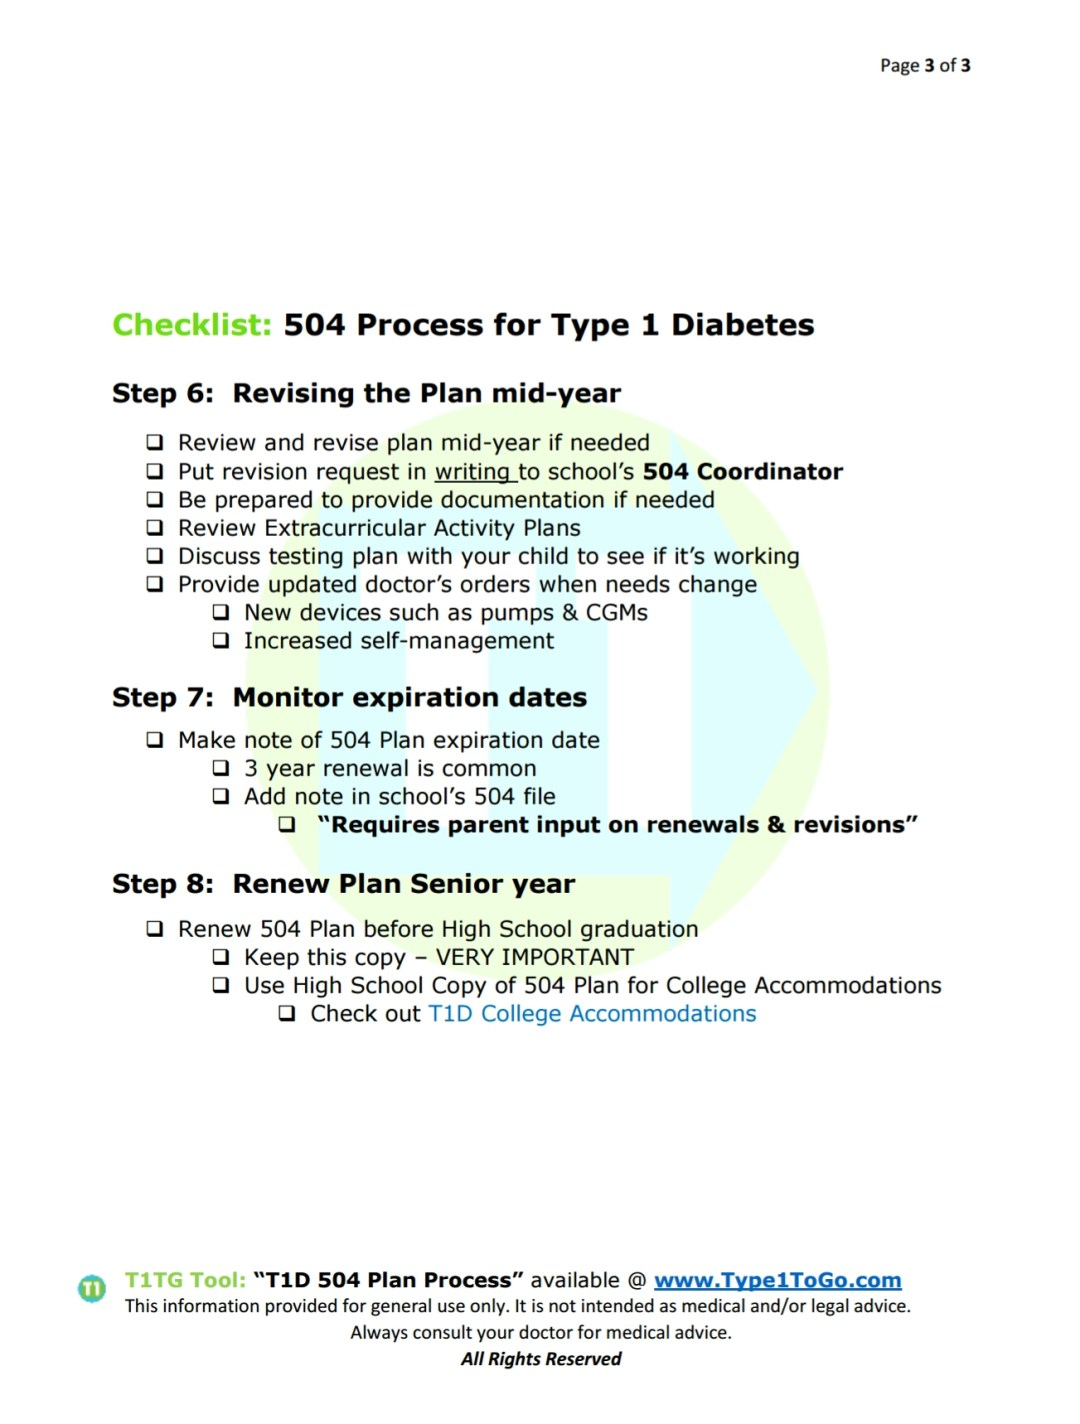 Type 1 Diabetic 504 Plan Process